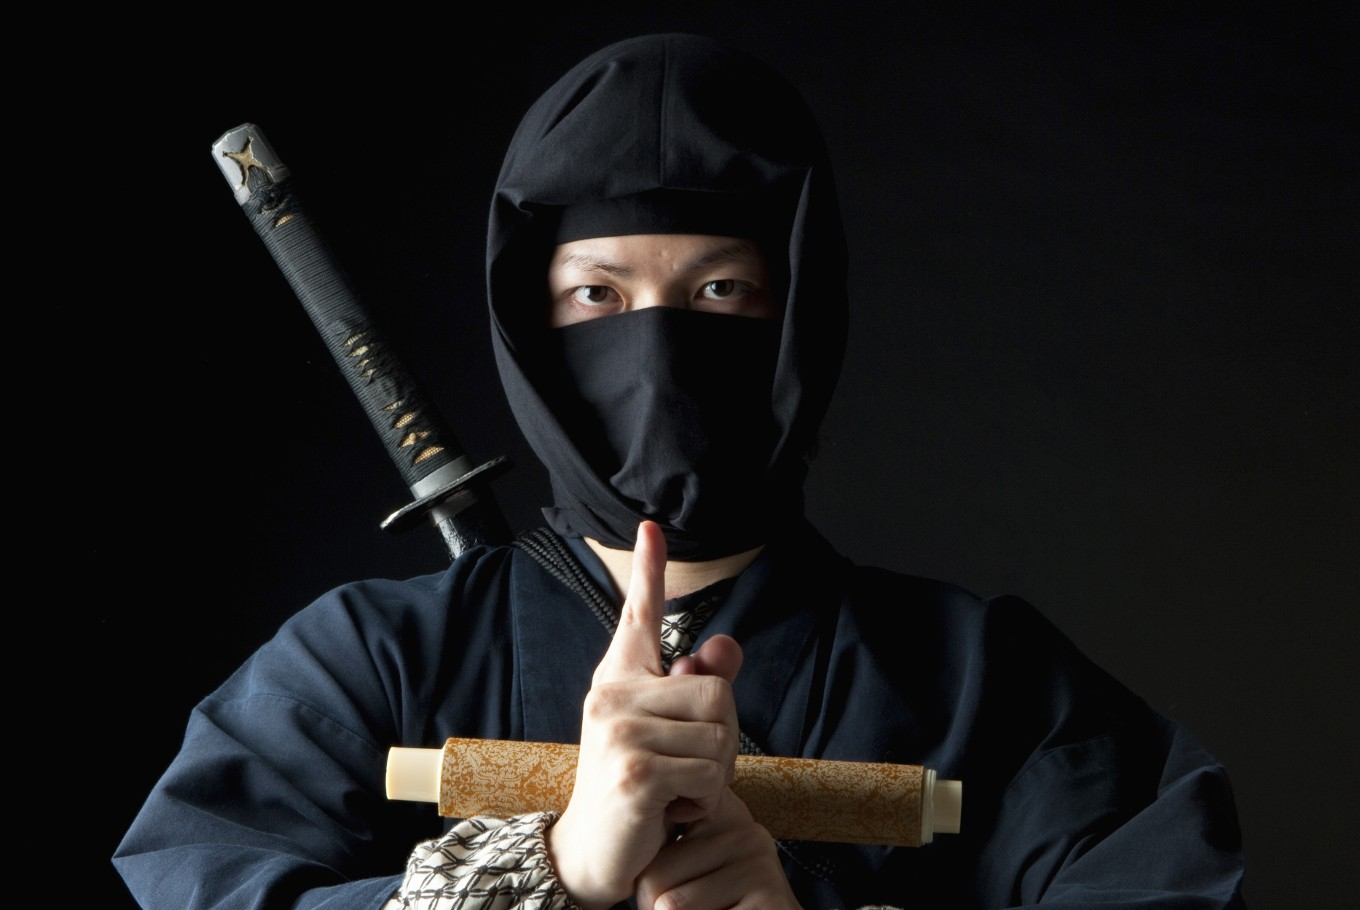 'Divine punishment': Ancient Ninja oath unveiled in Japan